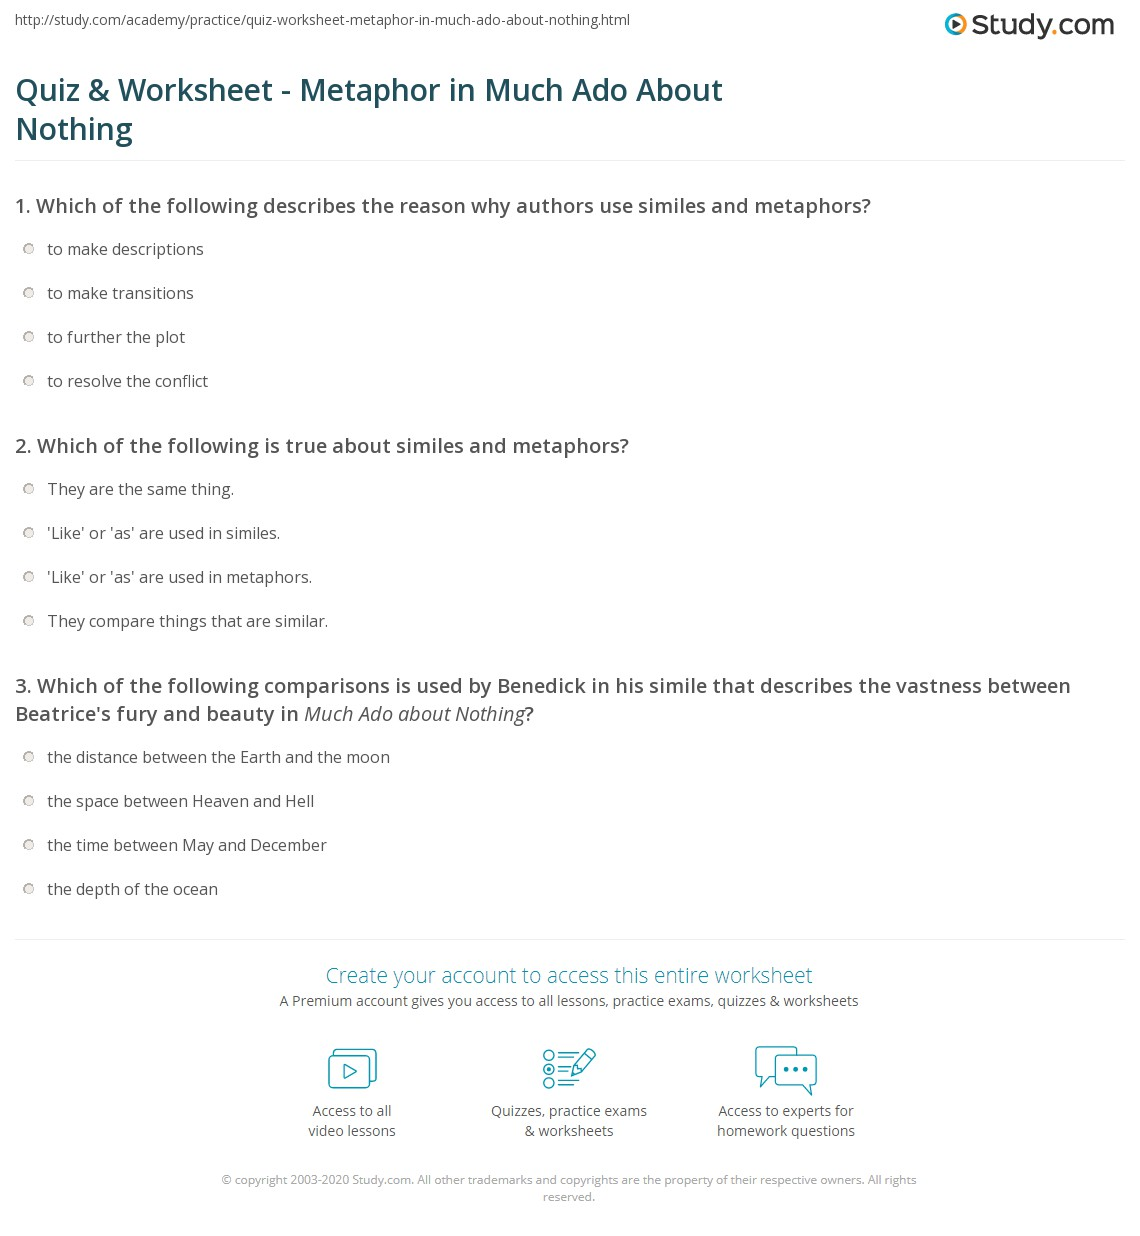 worksheet Metaphor Worksheets For 5th Grade metaphors worksheet free worksheets library download and print quiz w ksheet met ph much do bout h g study